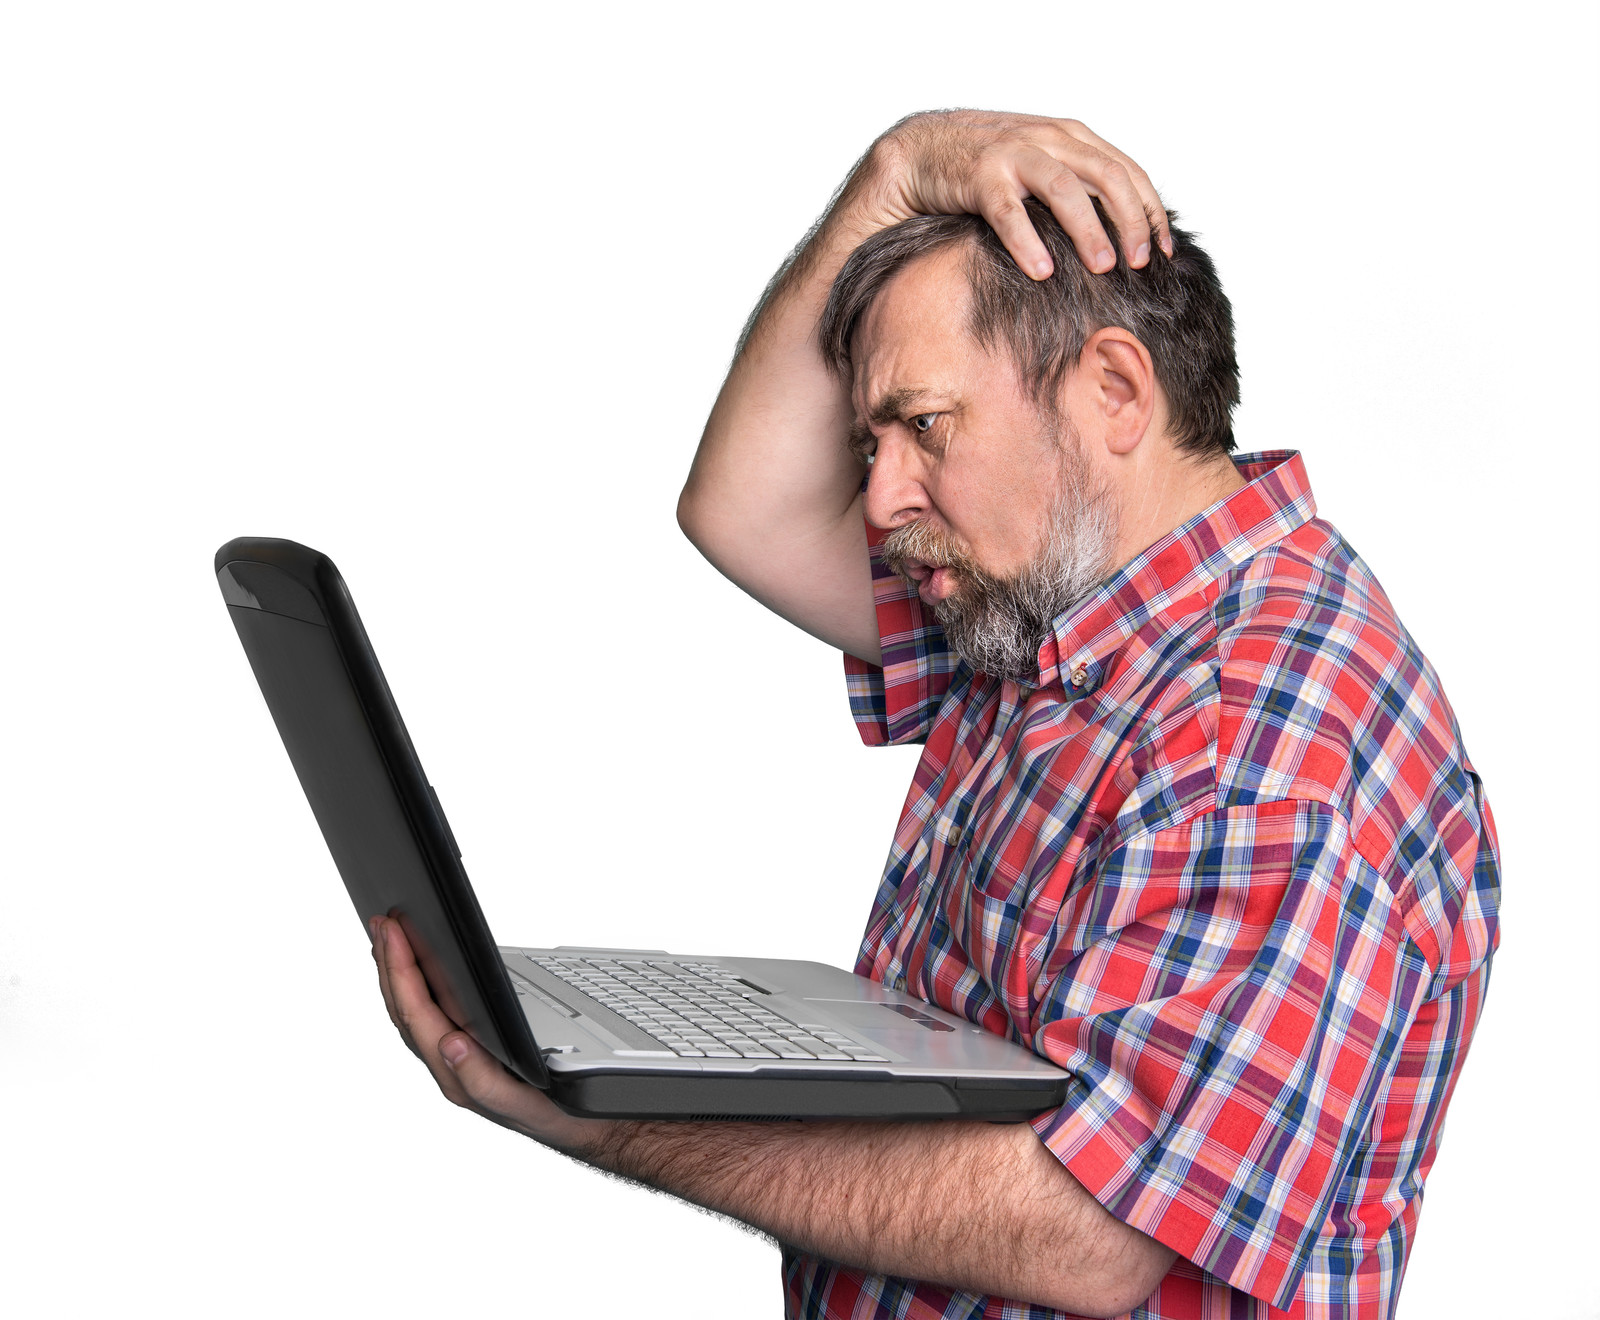 Older man with his hand on his head and a look of confusion on his face as he looks at the screen of a laptop computer in his other hand